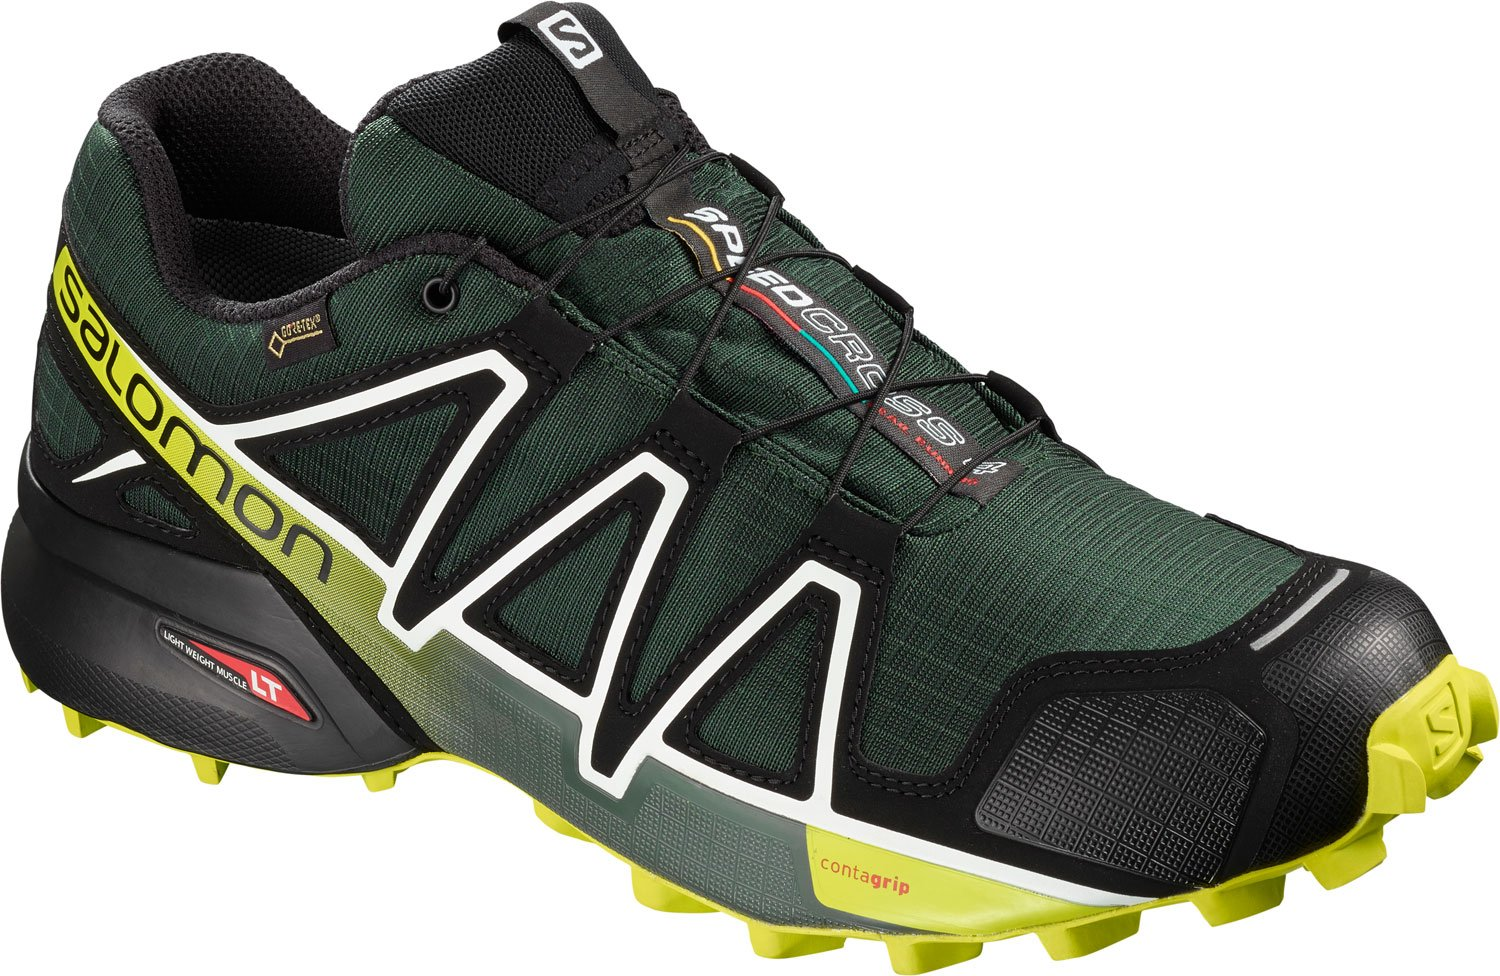 [サロモン] トレイルランニングシューズ SPEEDCROSS 4 GTX メンズ B07BRY4HYC 12 UK Green (Darkest Spruce/Black/Acid Lime Darkest Spruce/Black/Acid Lime)